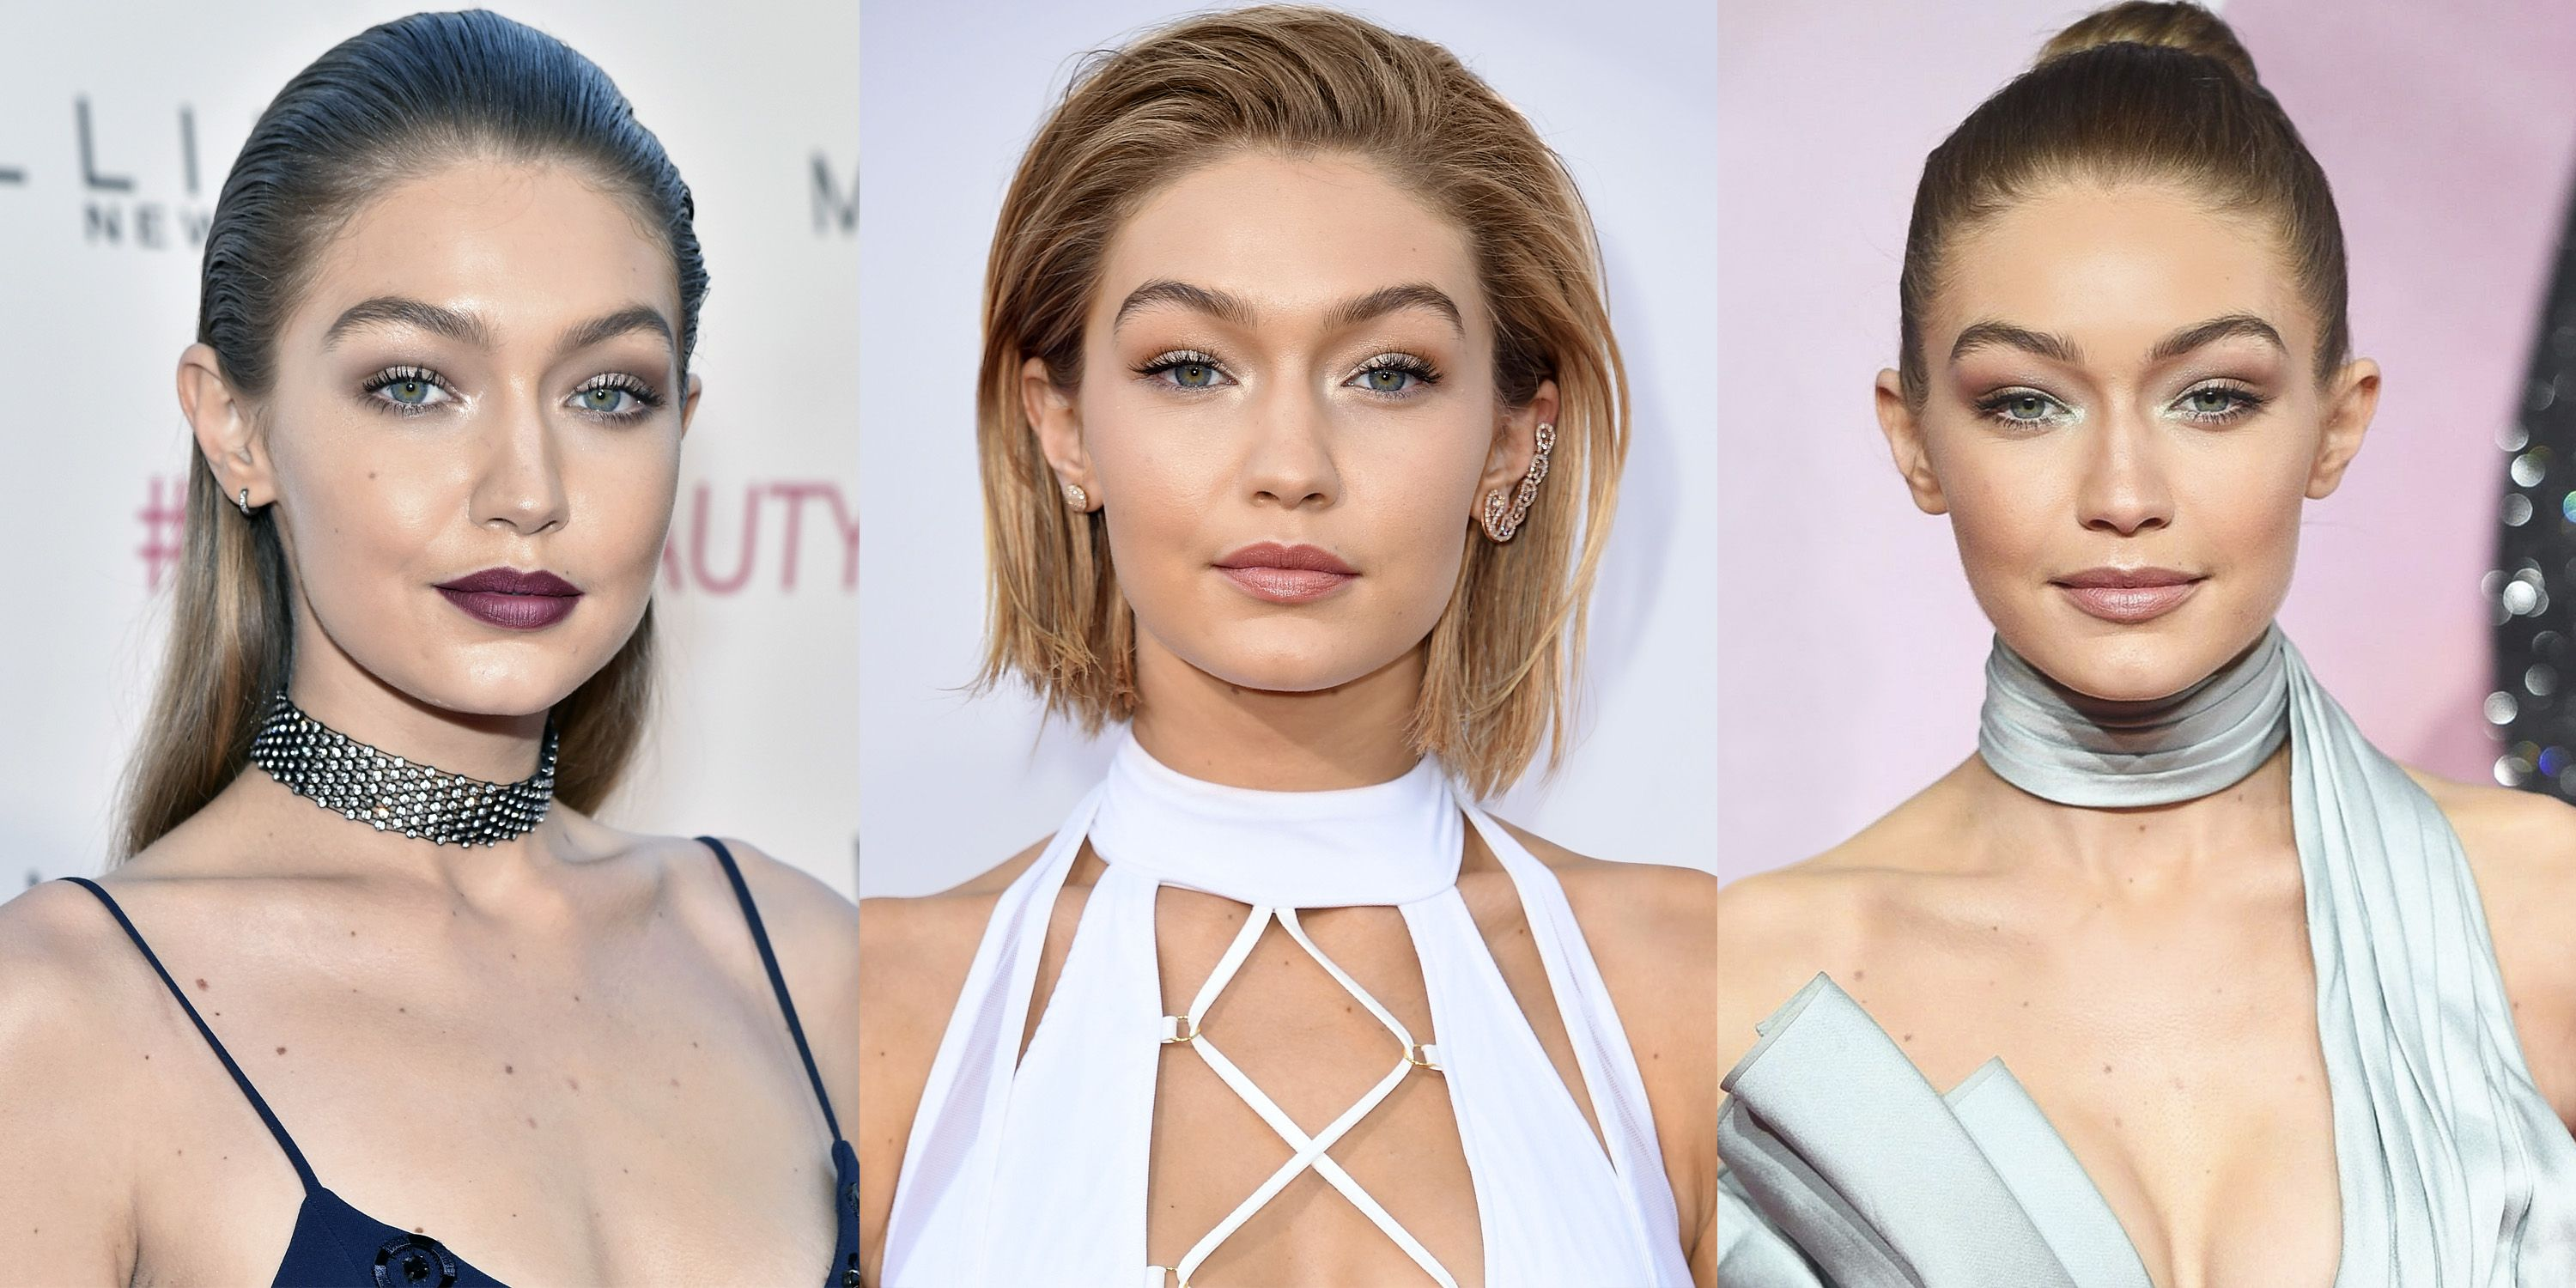 "<p>Hadid's evening makeup is always impeccably polished and varies from shimmering nudes to a more dramatic eye and lip.""Gigi likes to experiment with color,"" says Lee. ""She's very versatile."" A defined brow anchors all of the looks, though ""she doesn't like her brows overdrawn."" Standout lashes are clearly a must; Lee makes sure to use four coats of mascara. <span class=""redactor-invisible-space""></span></p>"